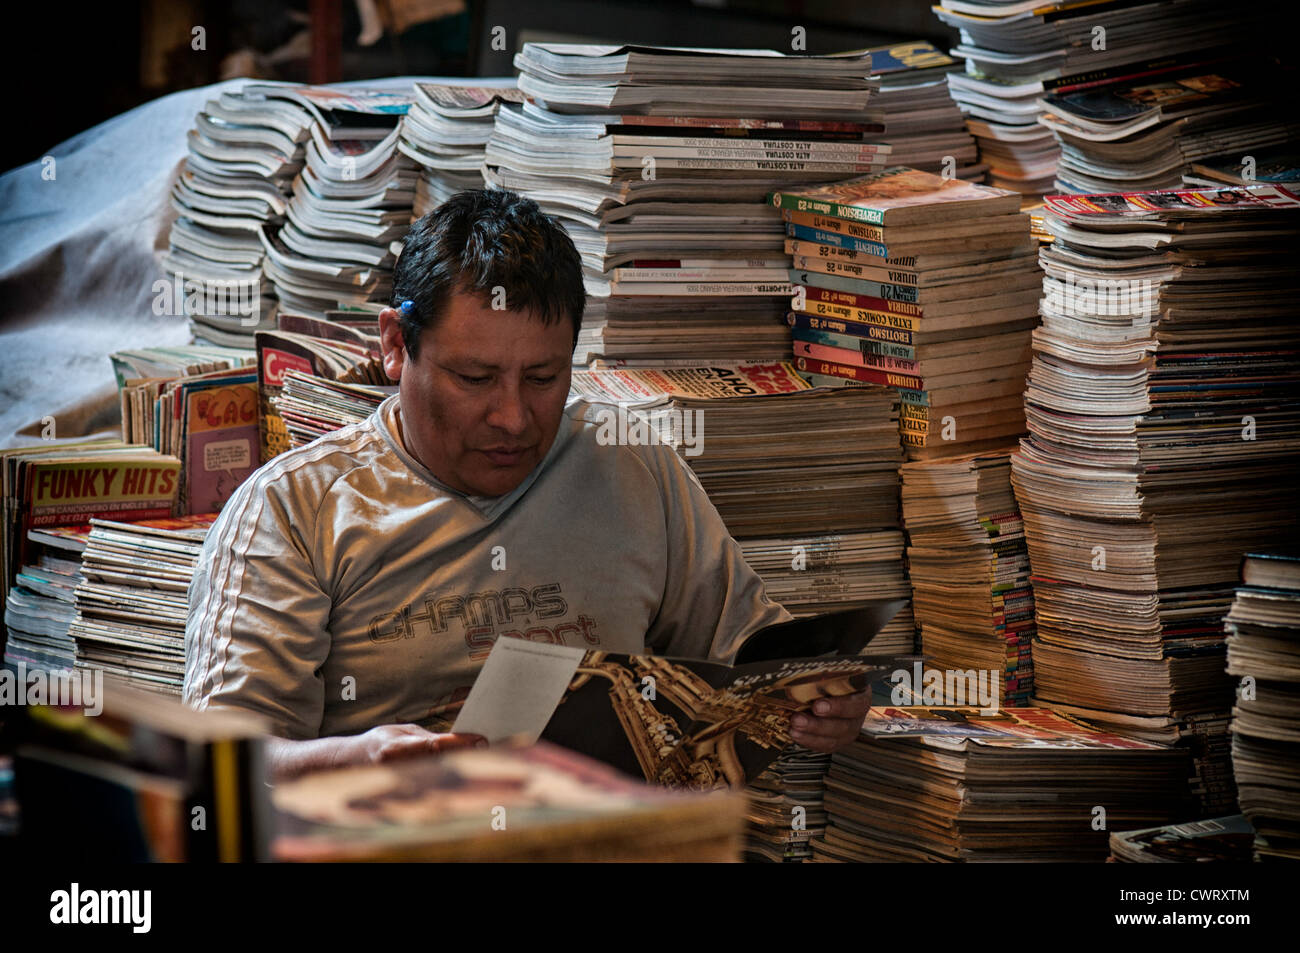 An old book and magazines seller in Lima, Peru - Stock Image